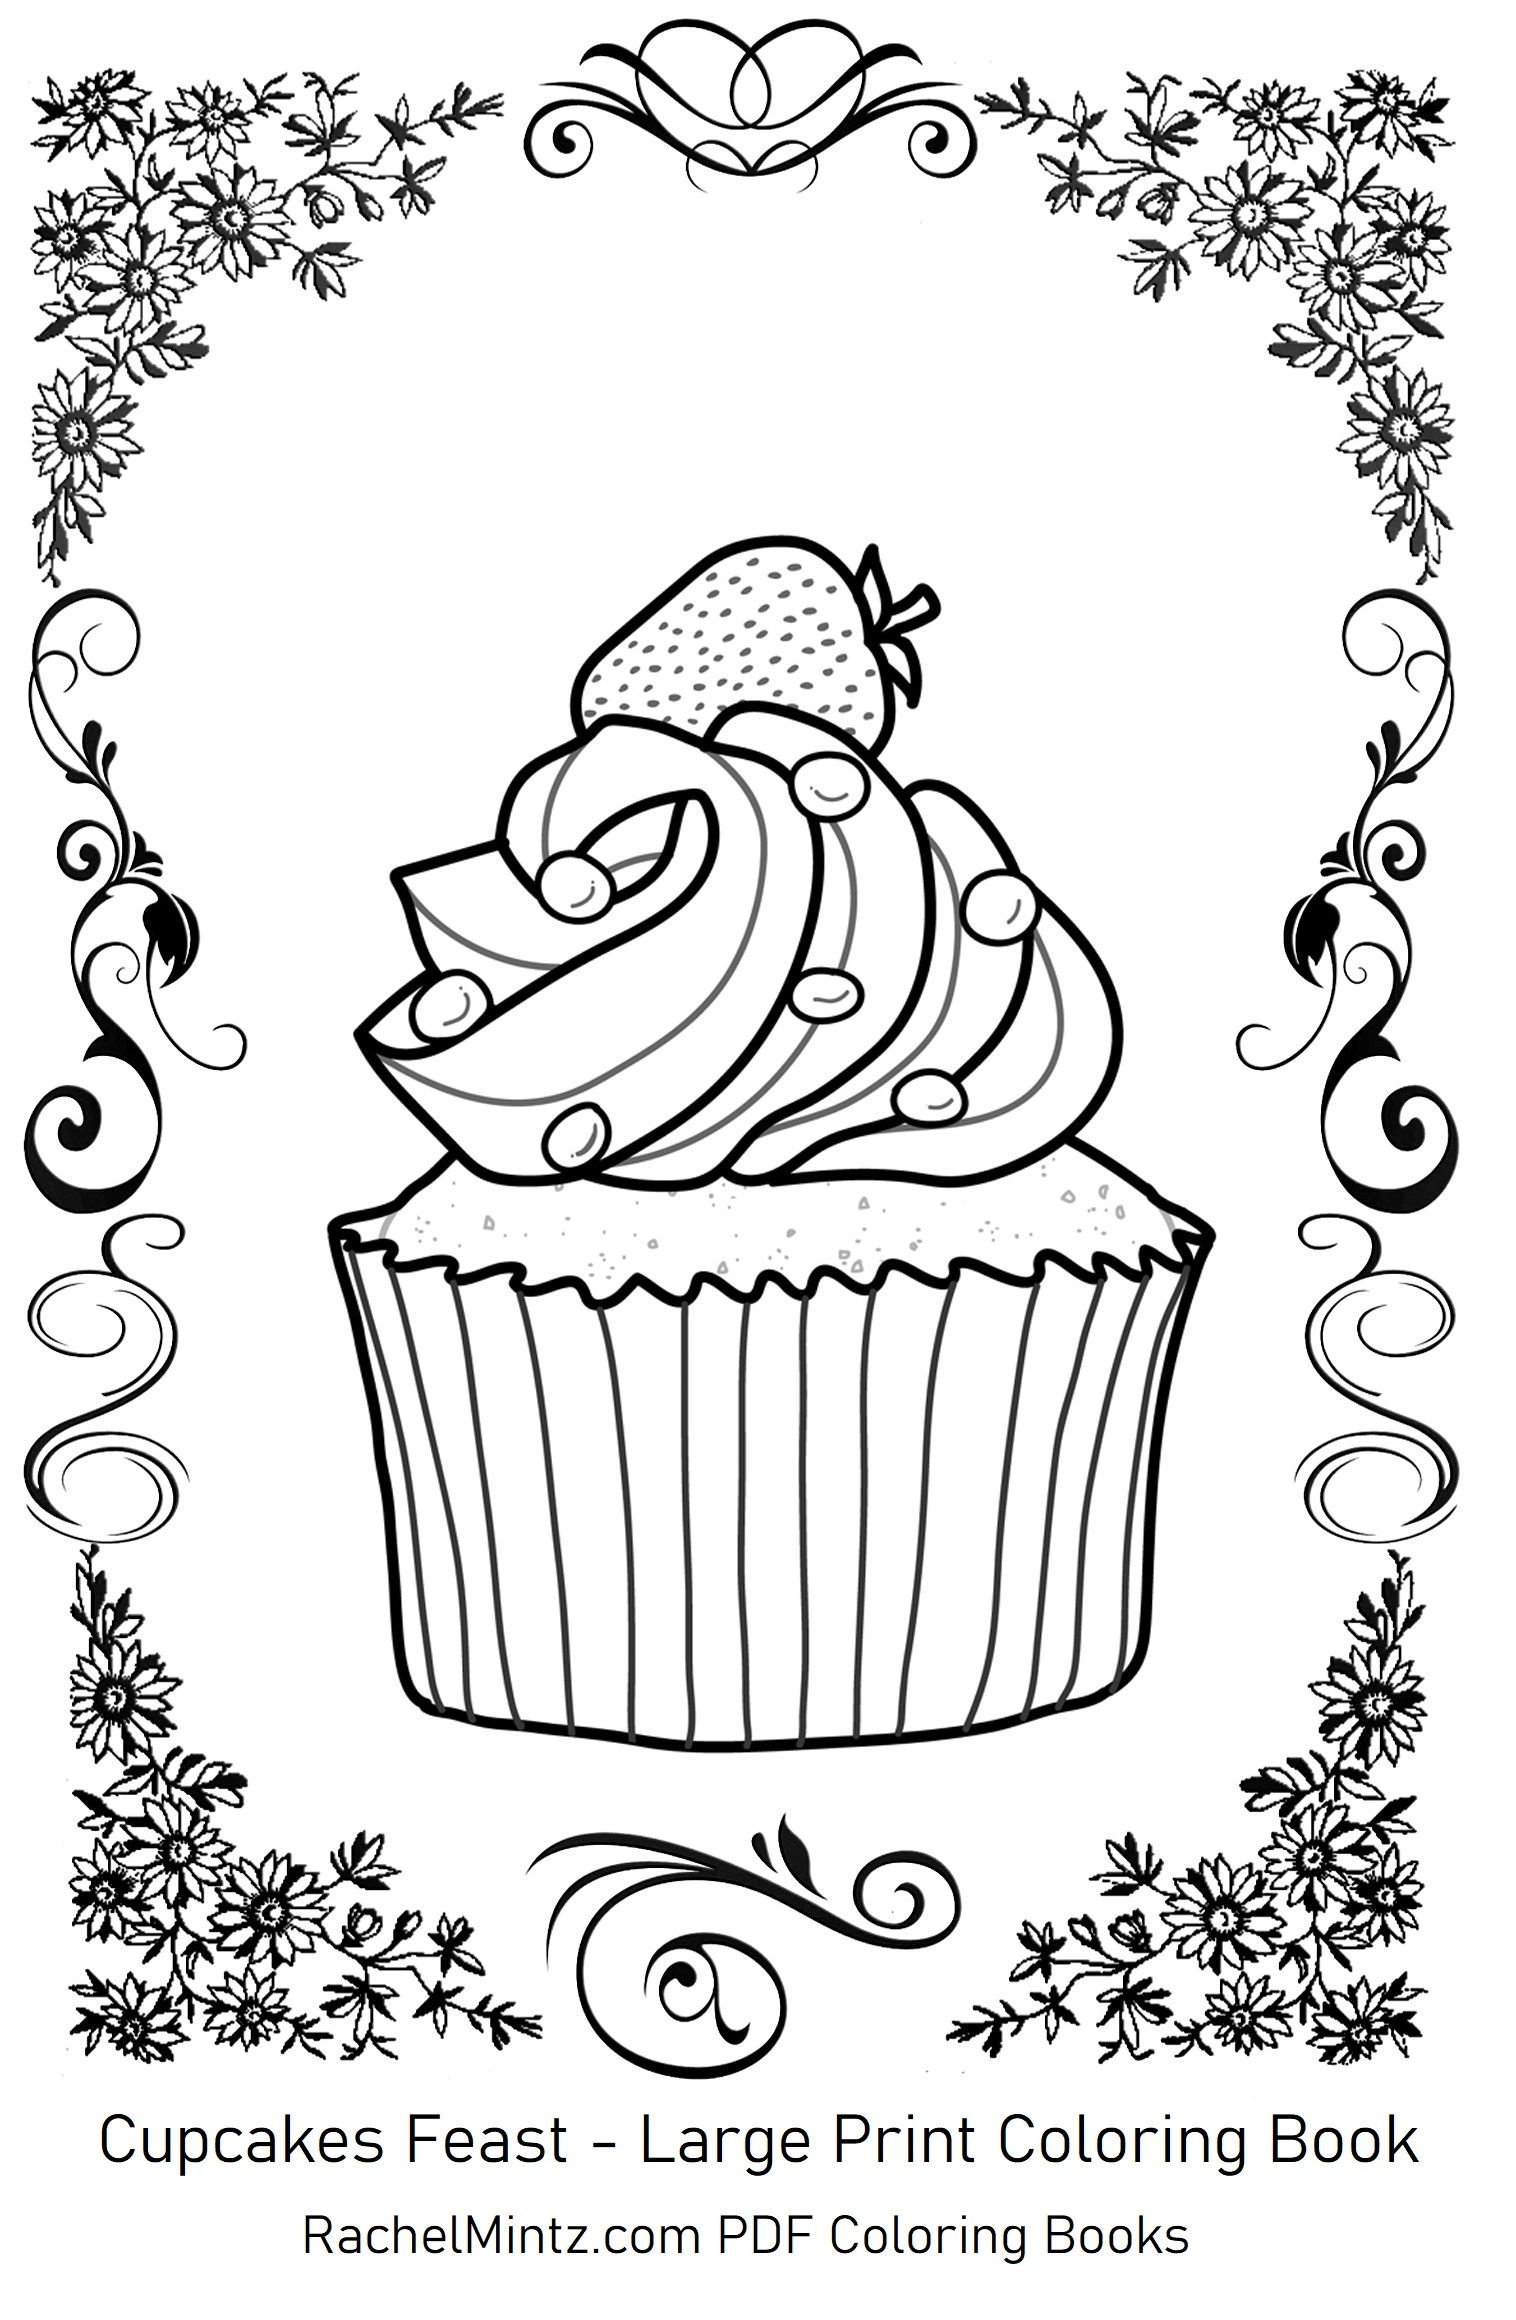 Large Print Desserts Coloring Book Coloring Books Large Prints Coloring Pages